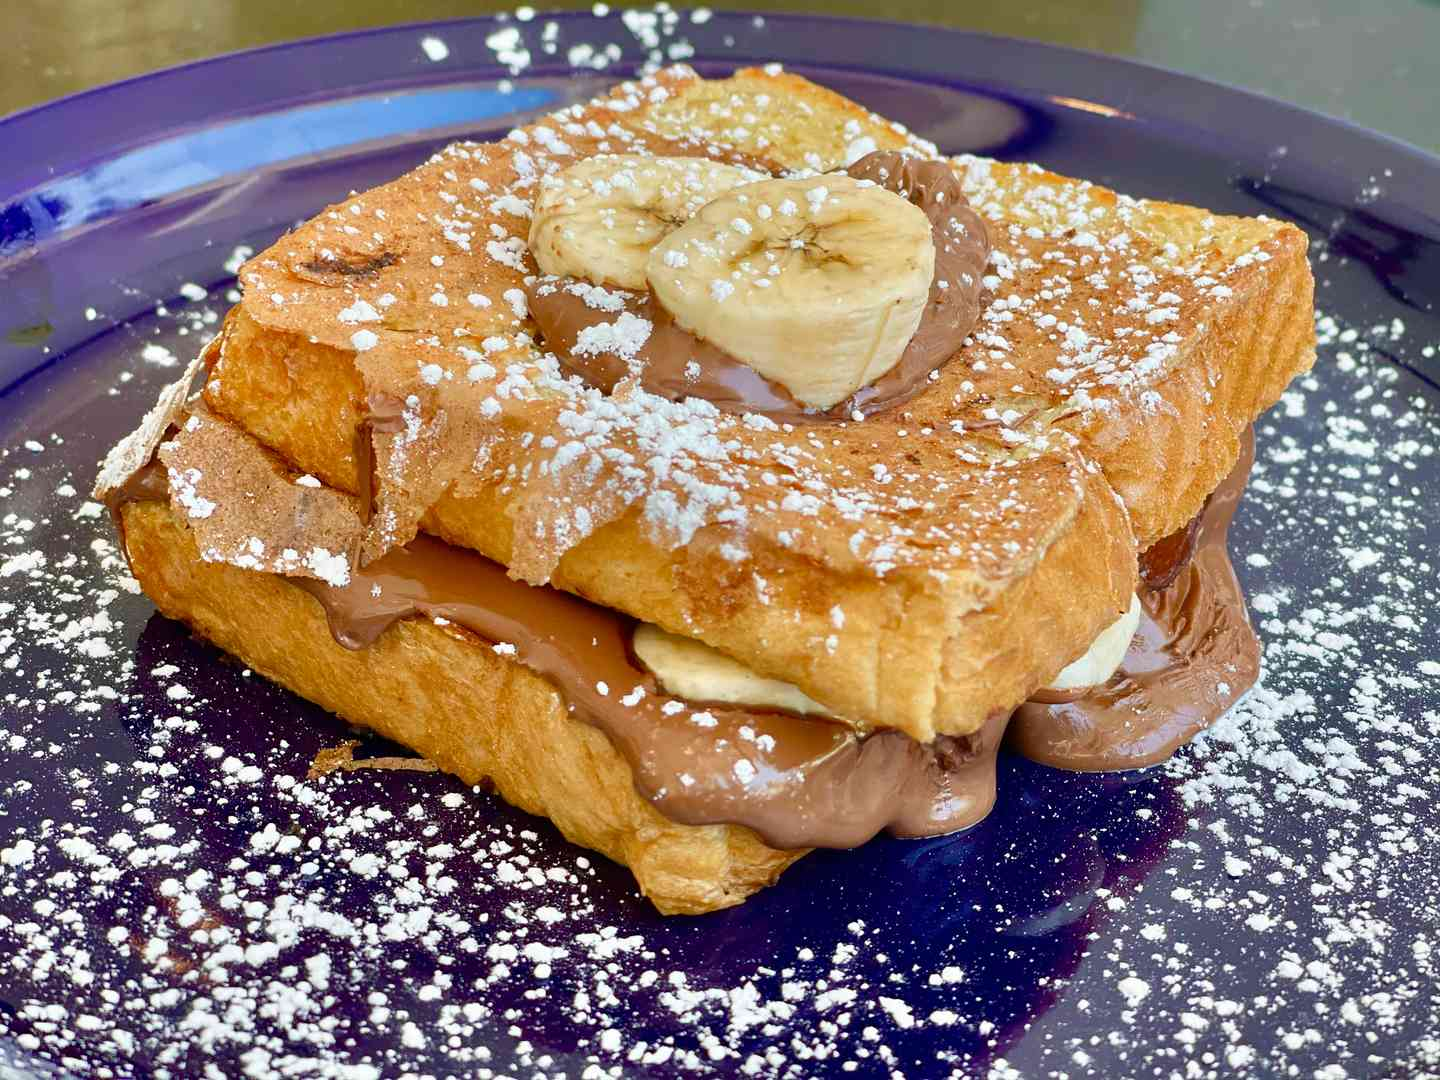 Banana & Nutella Stuffed French Toast